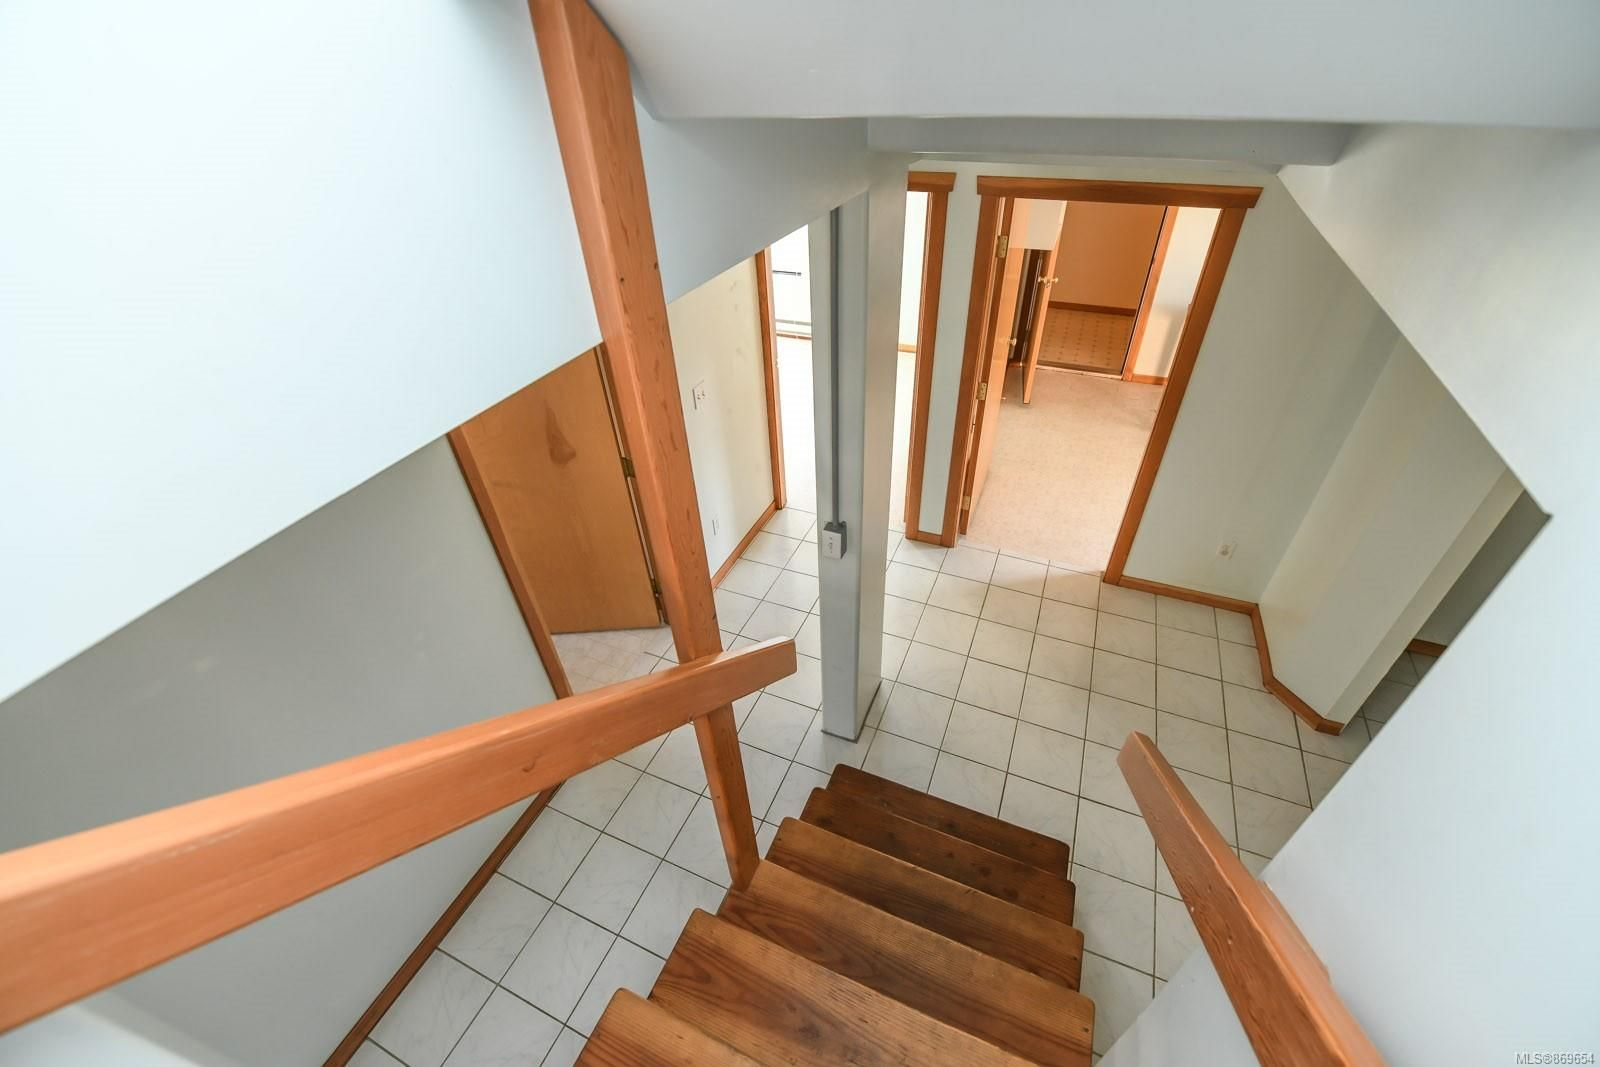 Photo 16: Photos: 4712 Cumberland Rd in : CV Cumberland House for sale (Comox Valley)  : MLS®# 869654